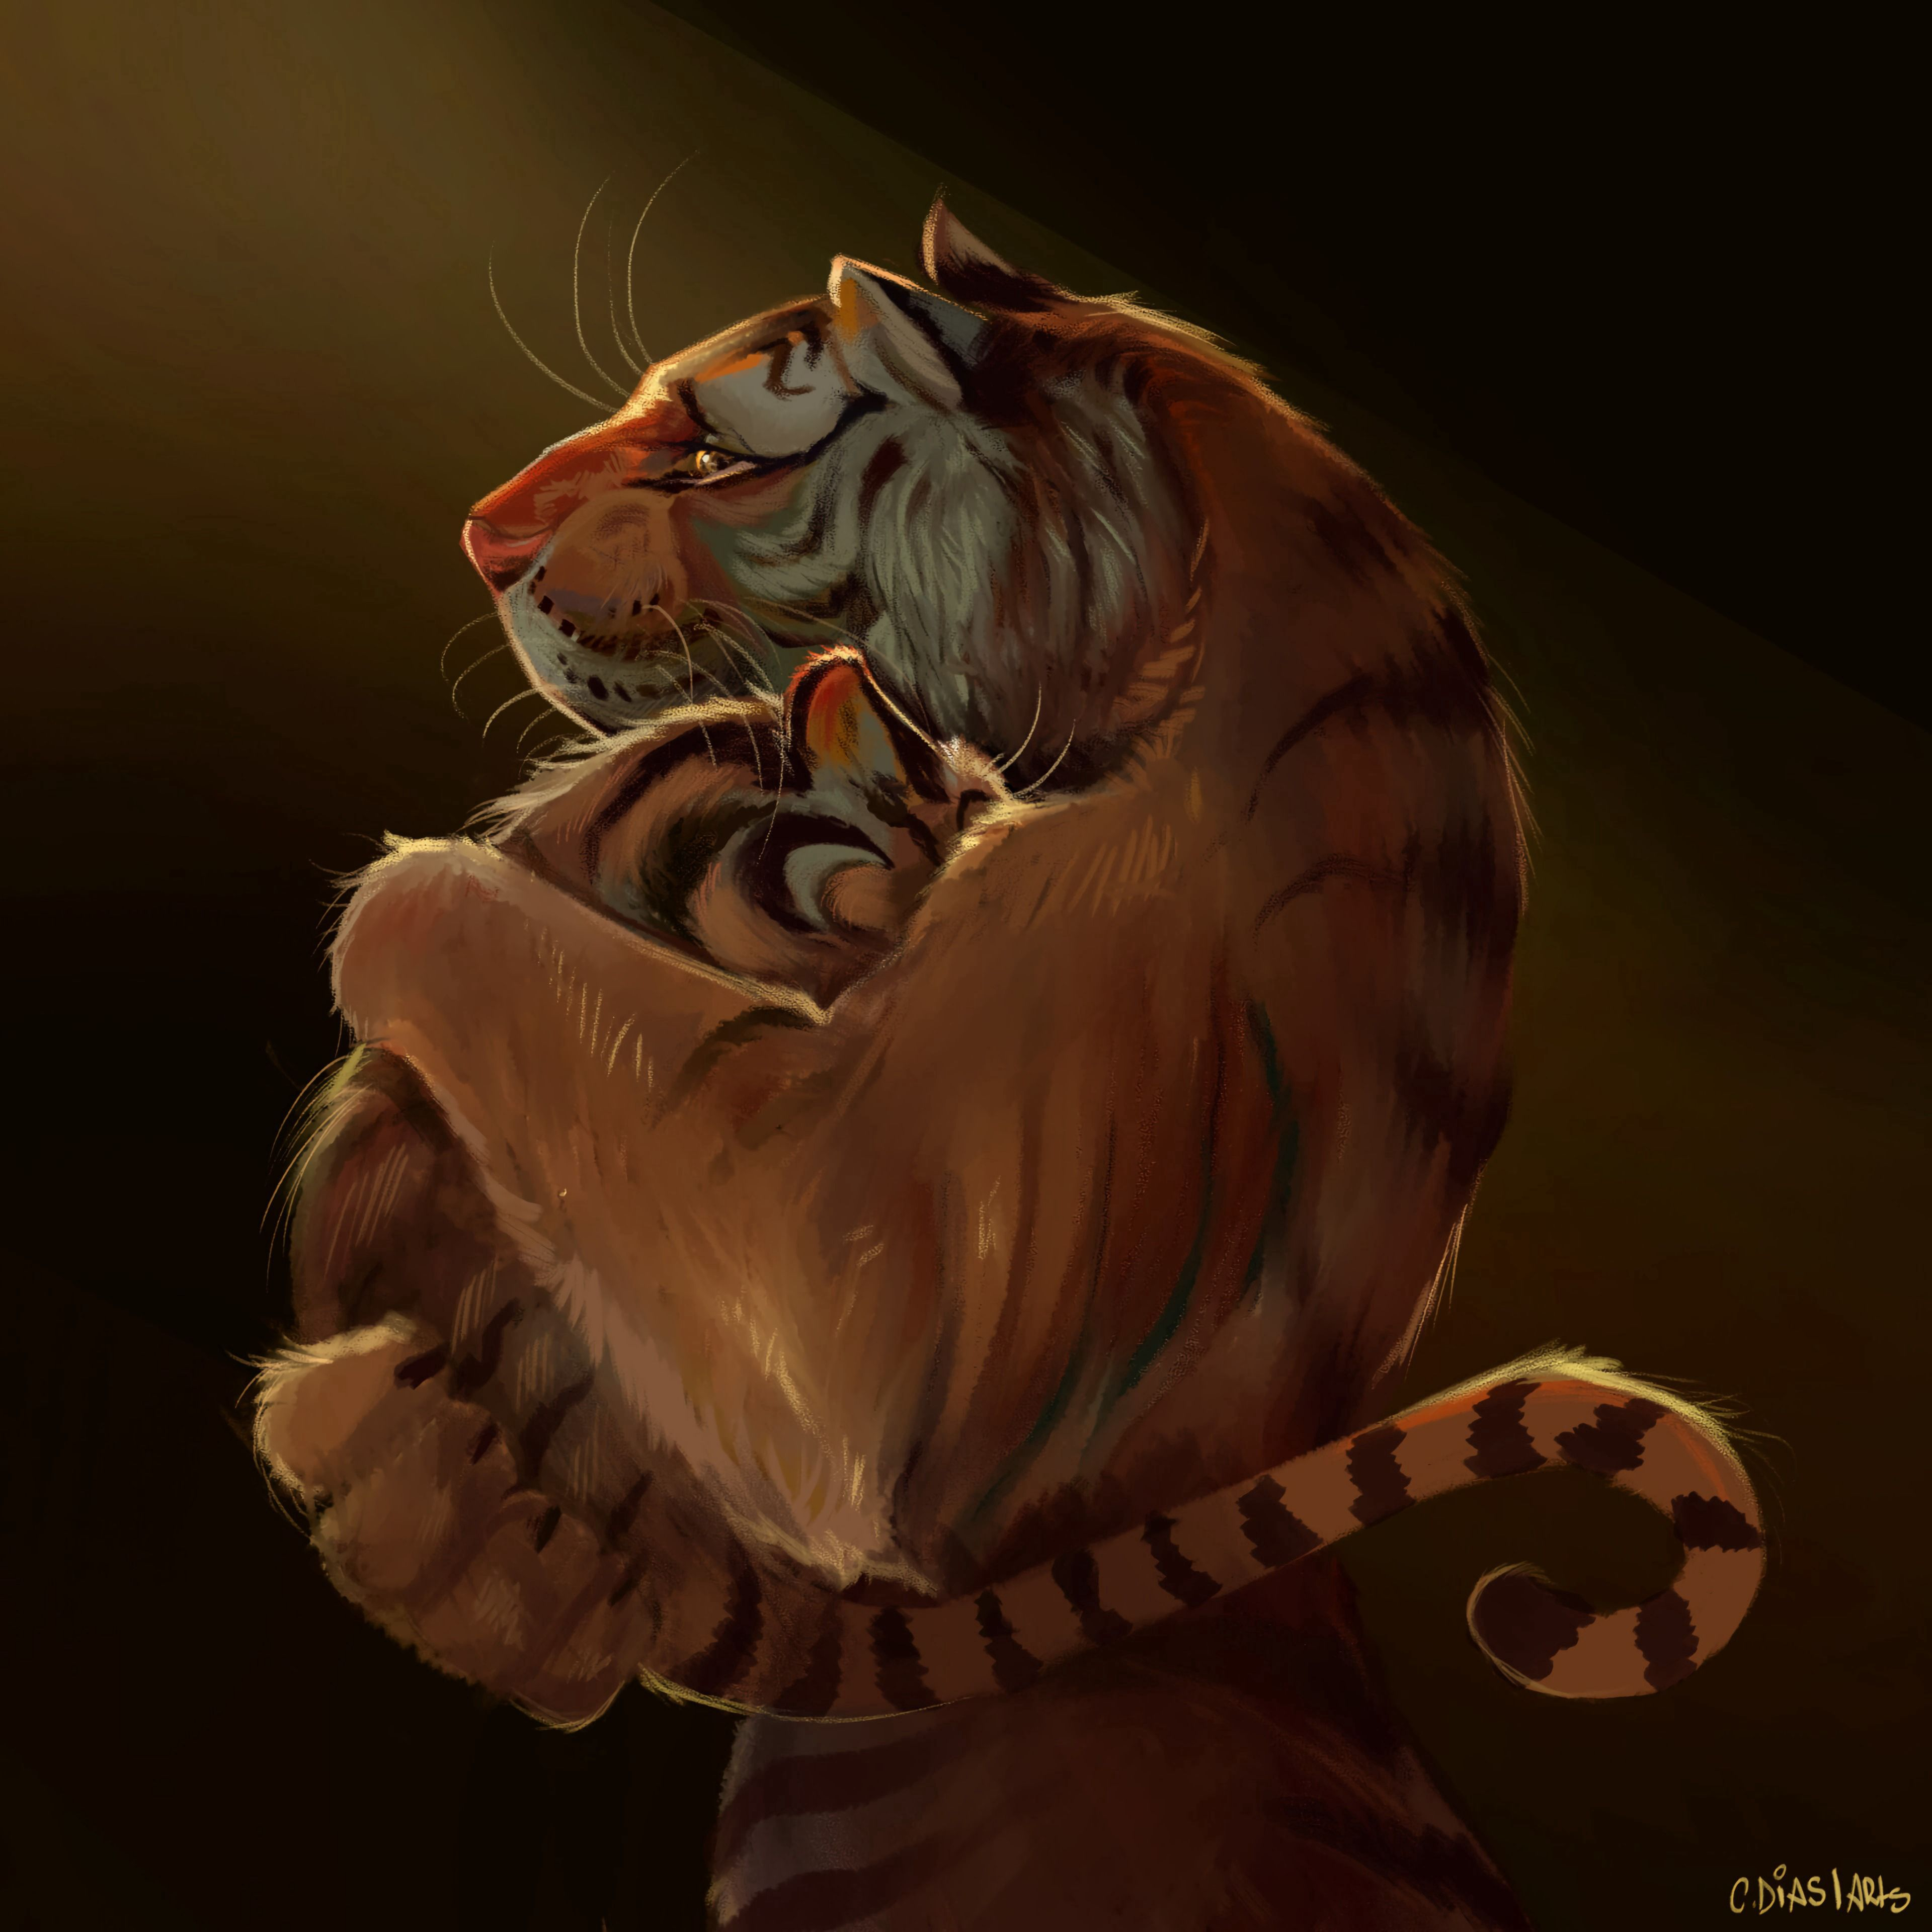 114021 download wallpaper Tiger Cub, Tiger, Embrace, Art, Tigers screensavers and pictures for free